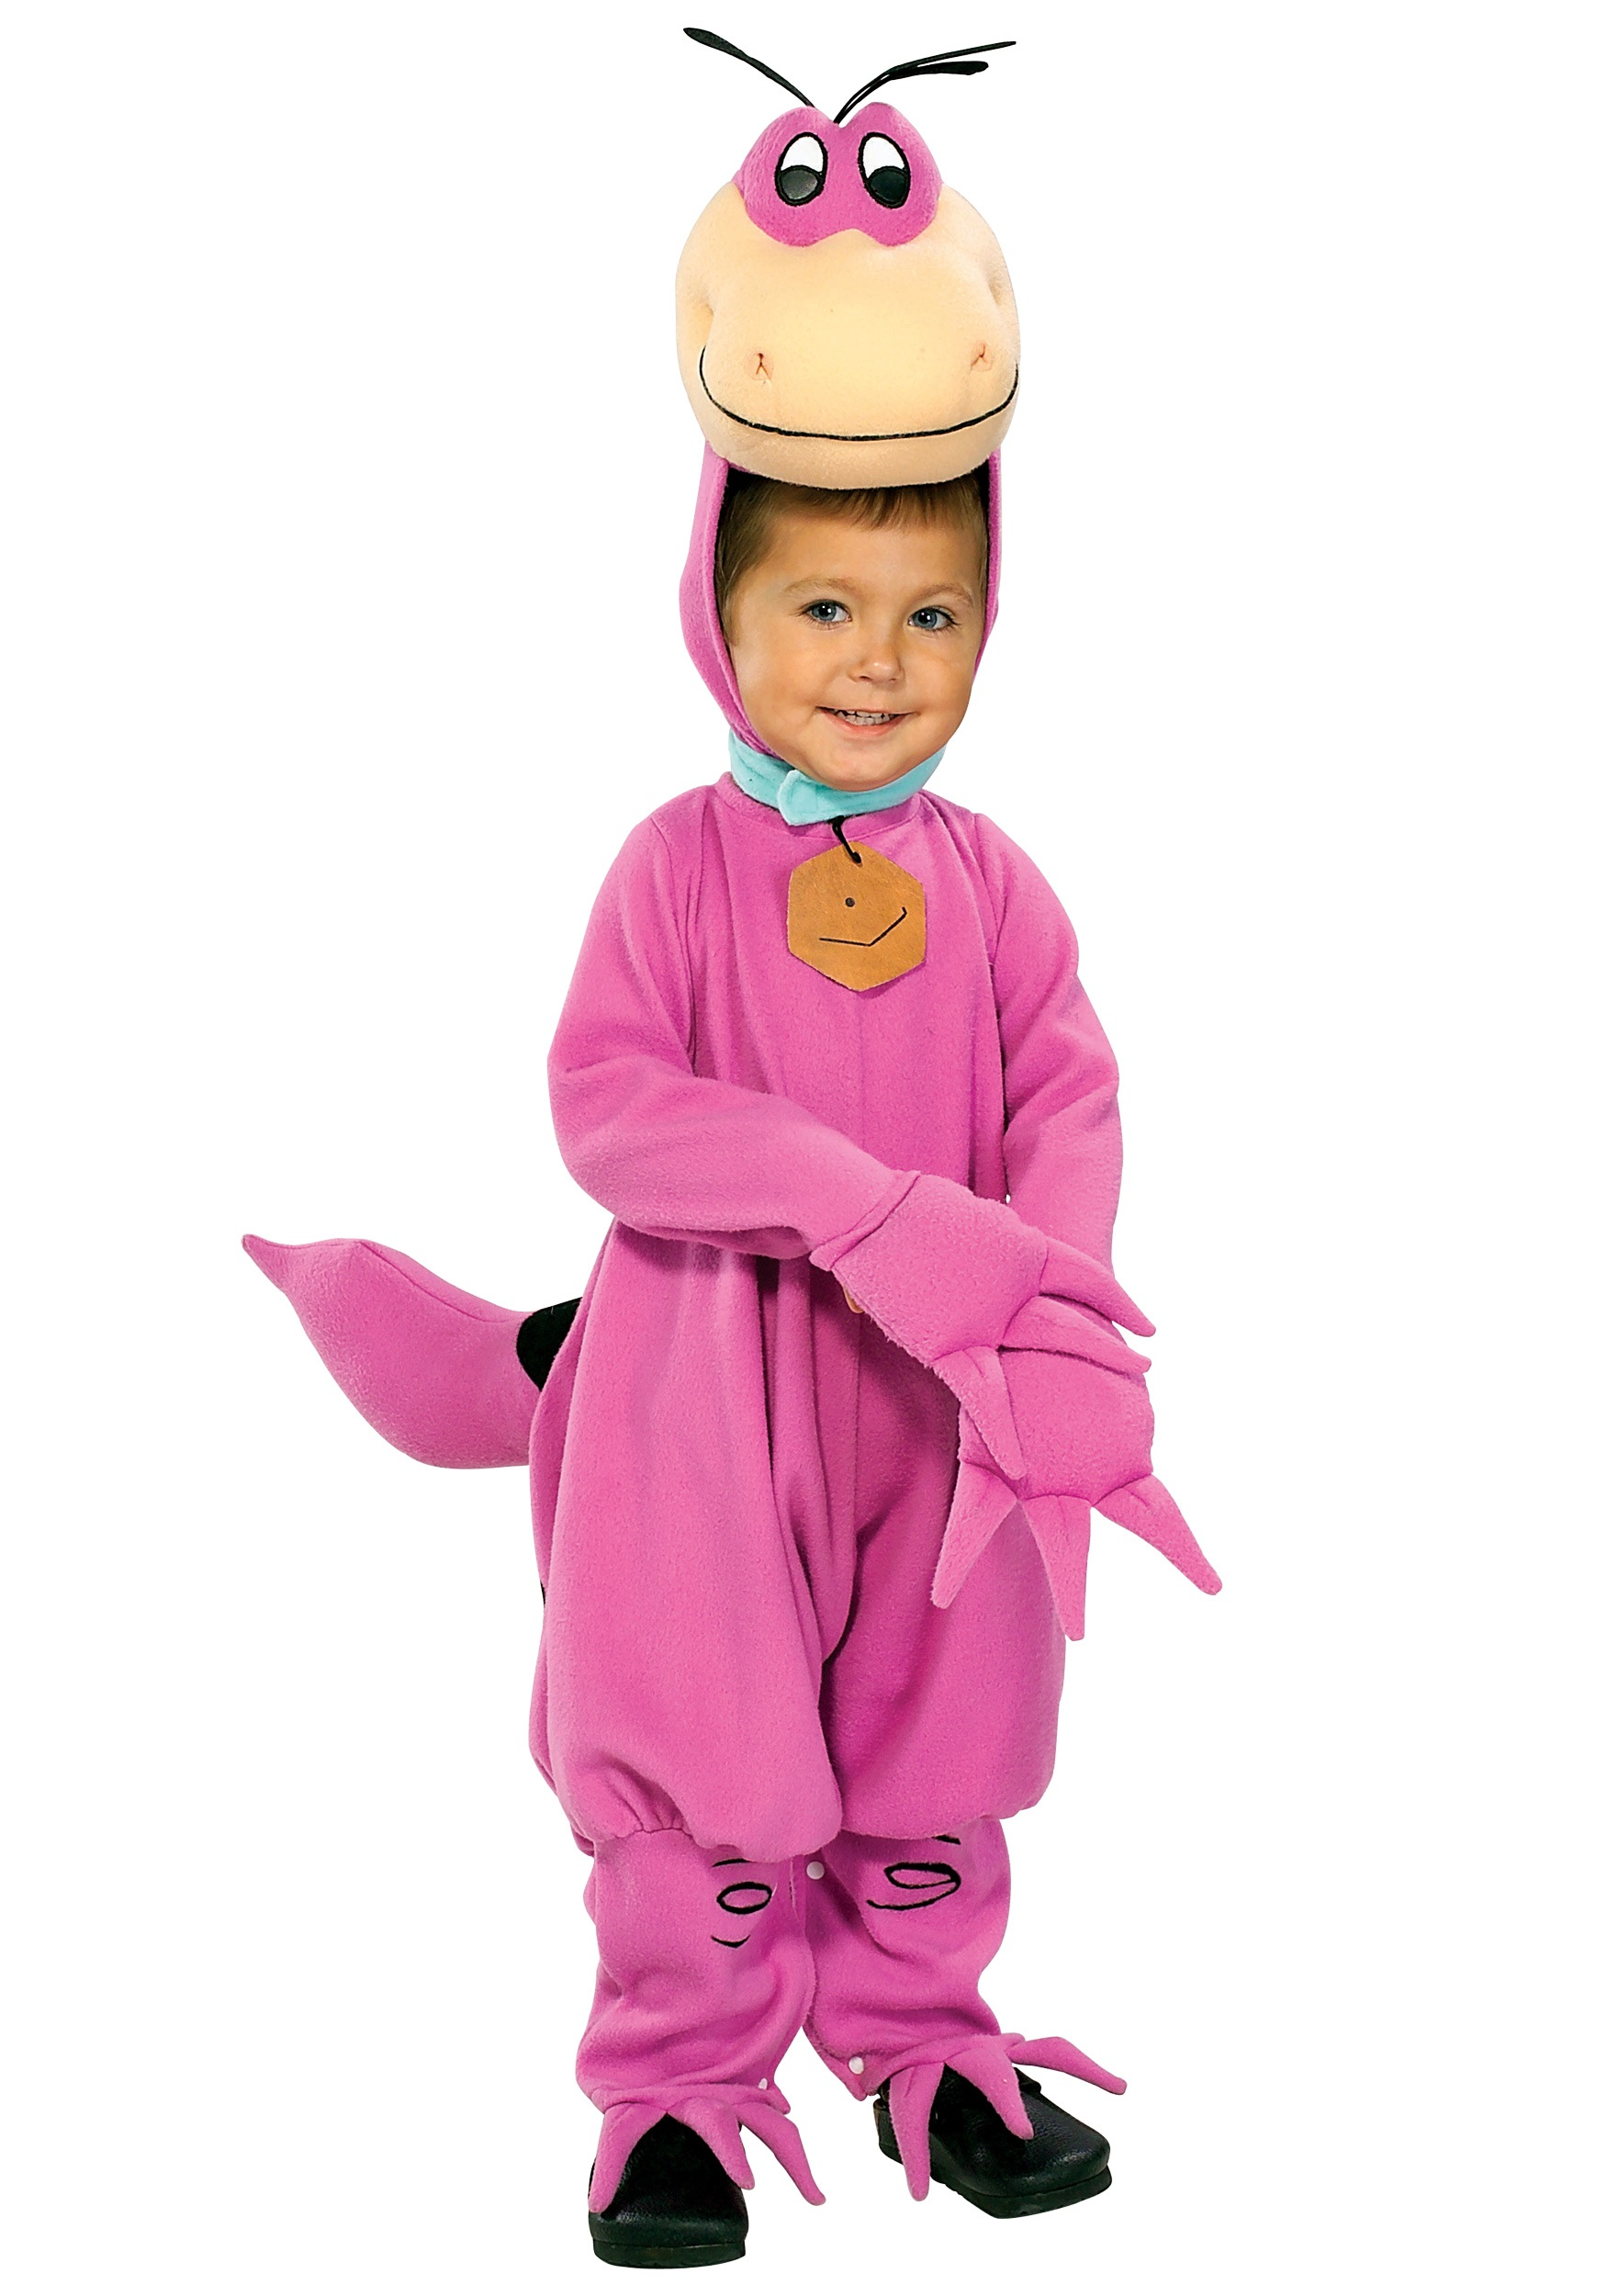 38+ Kids Halloween Costumes